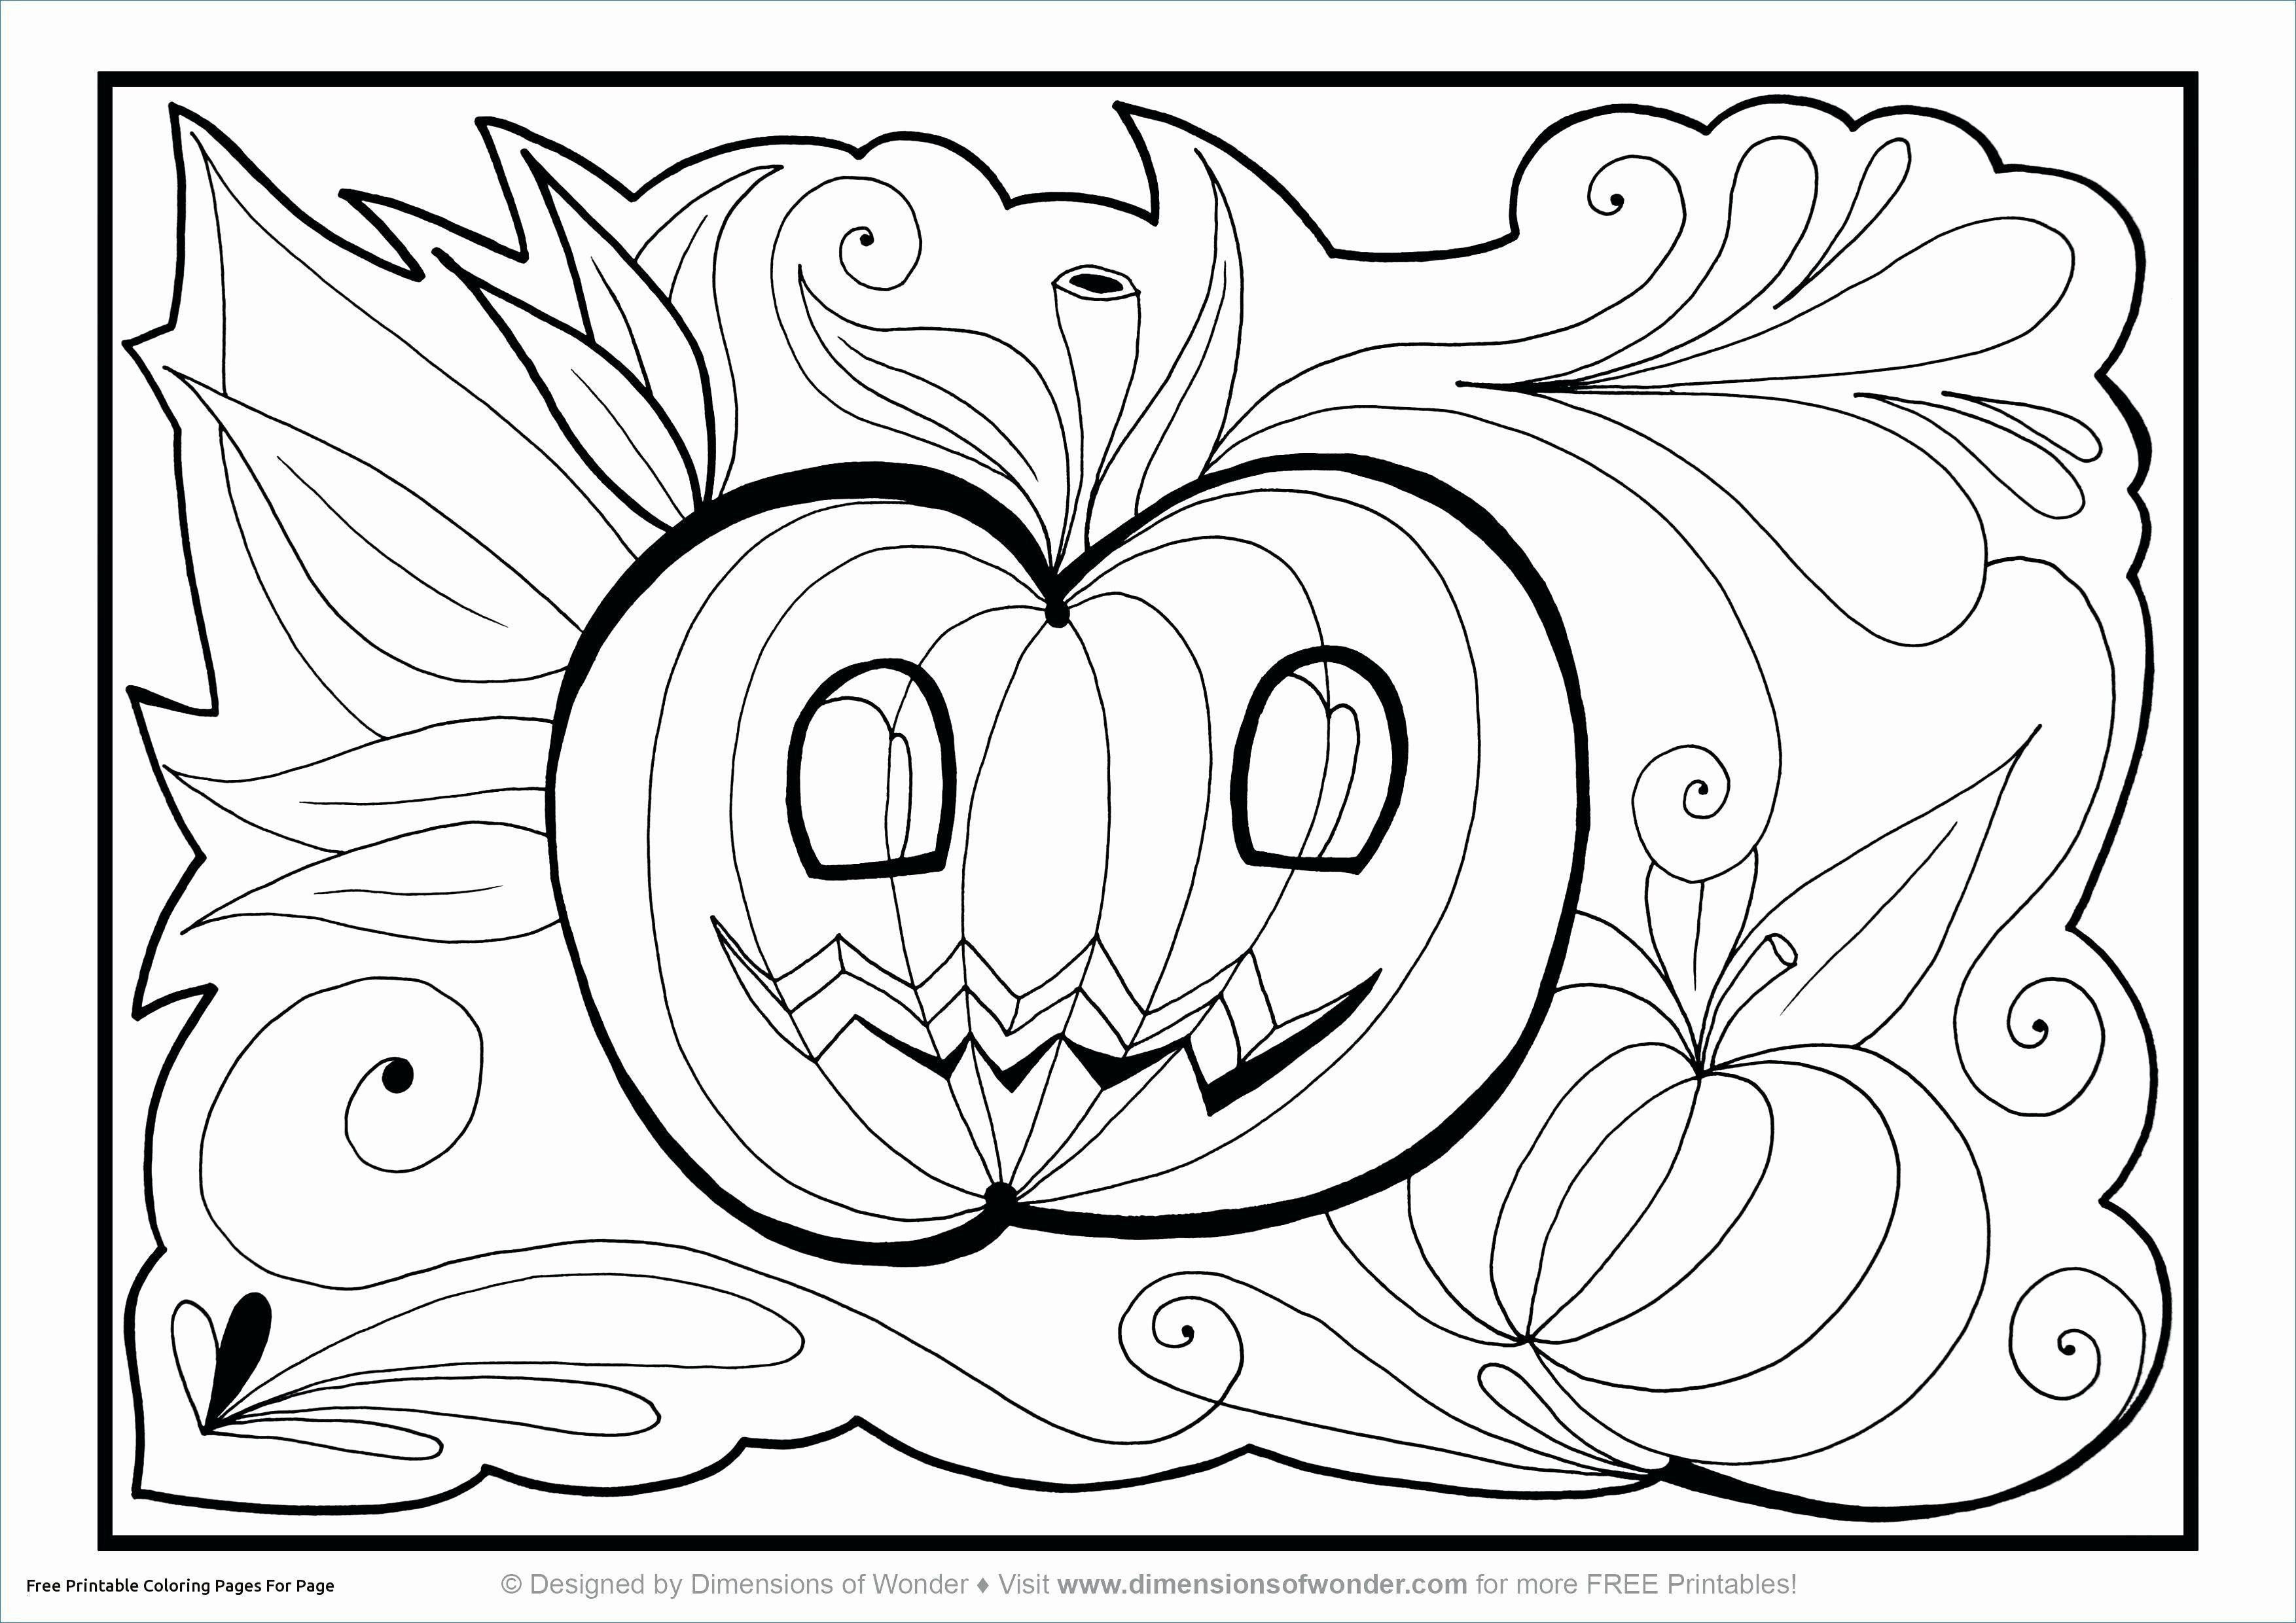 Be Kind Coloring Page Unique Luxury Halloween Costume Coloring Pages Tintuc247 Pumpkin Coloring Pages Fall Coloring Pages Valentine Coloring Pages